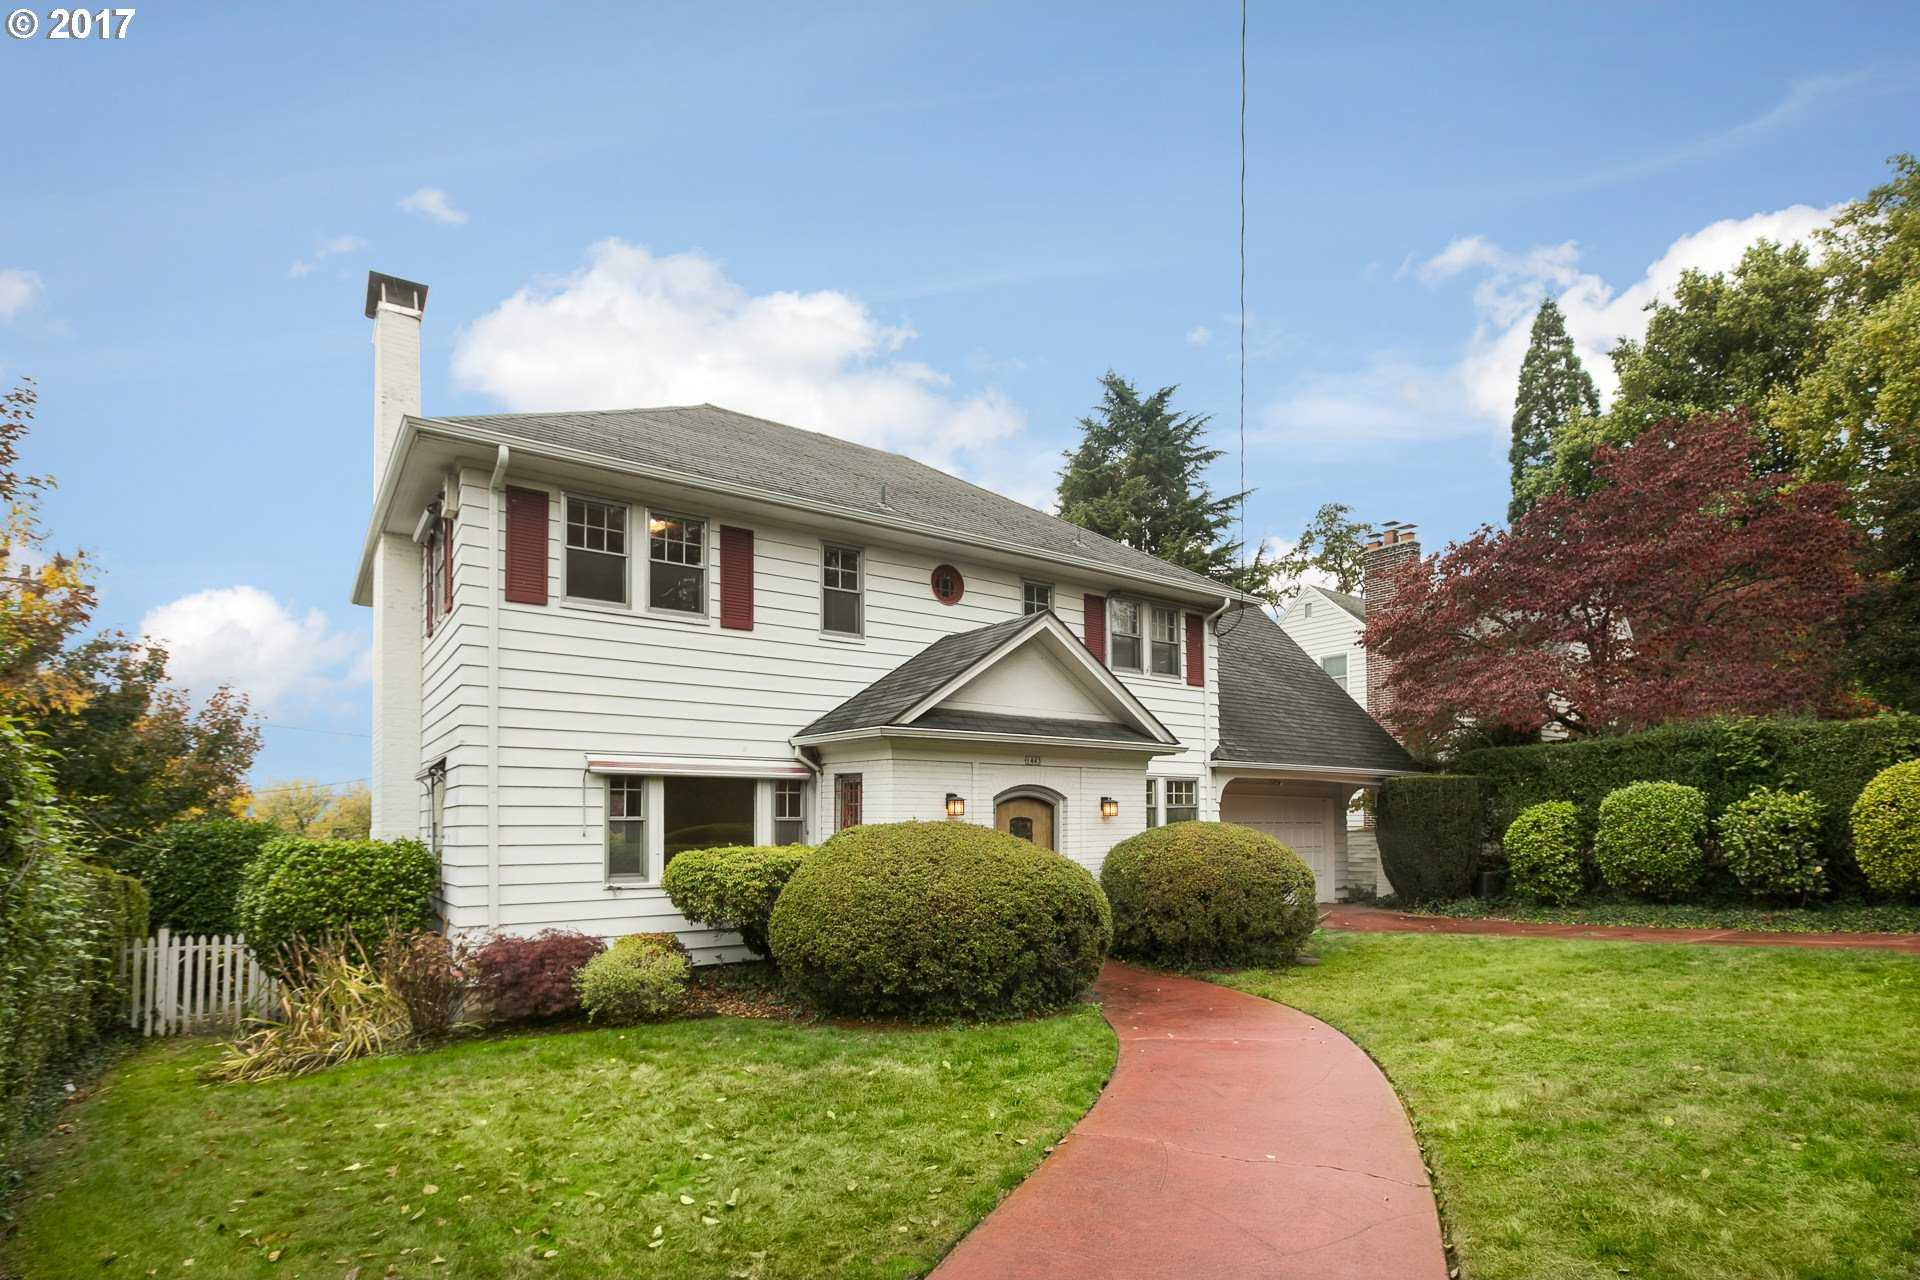 $1,100,000 - 4Br/4Ba -  for Sale in Mt Tabor, Portland